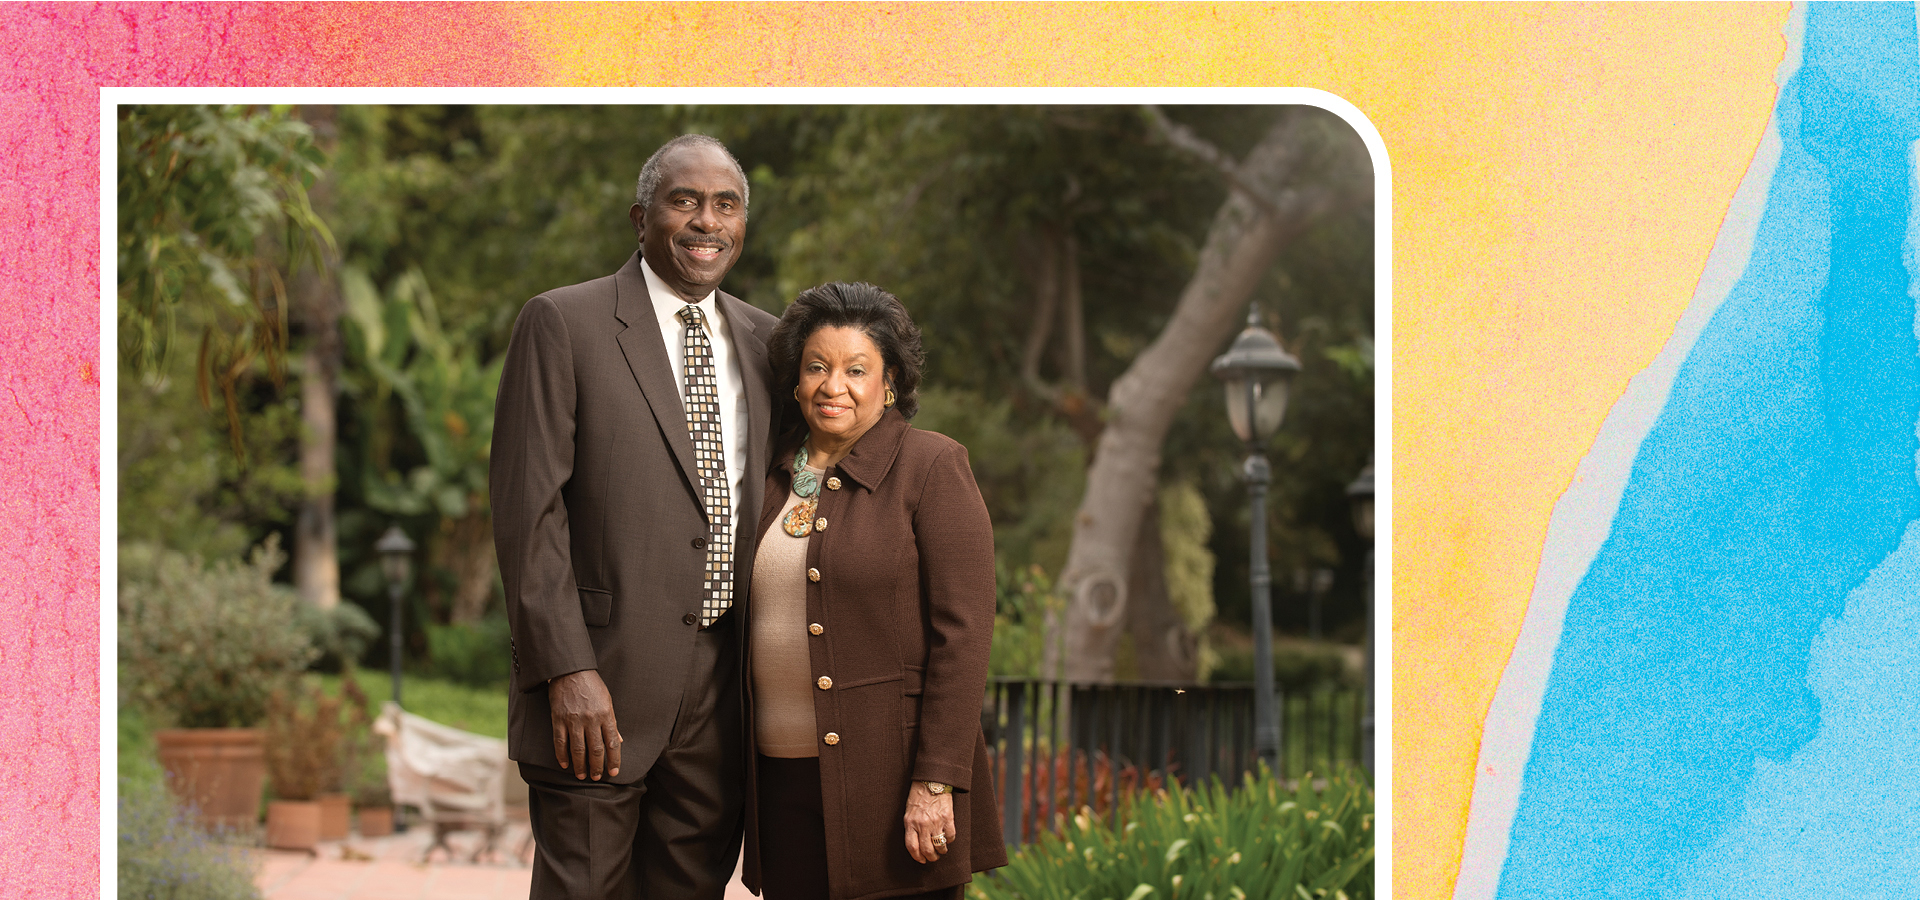 CPP President Soraya M. Coley with her husband, Ron Coley